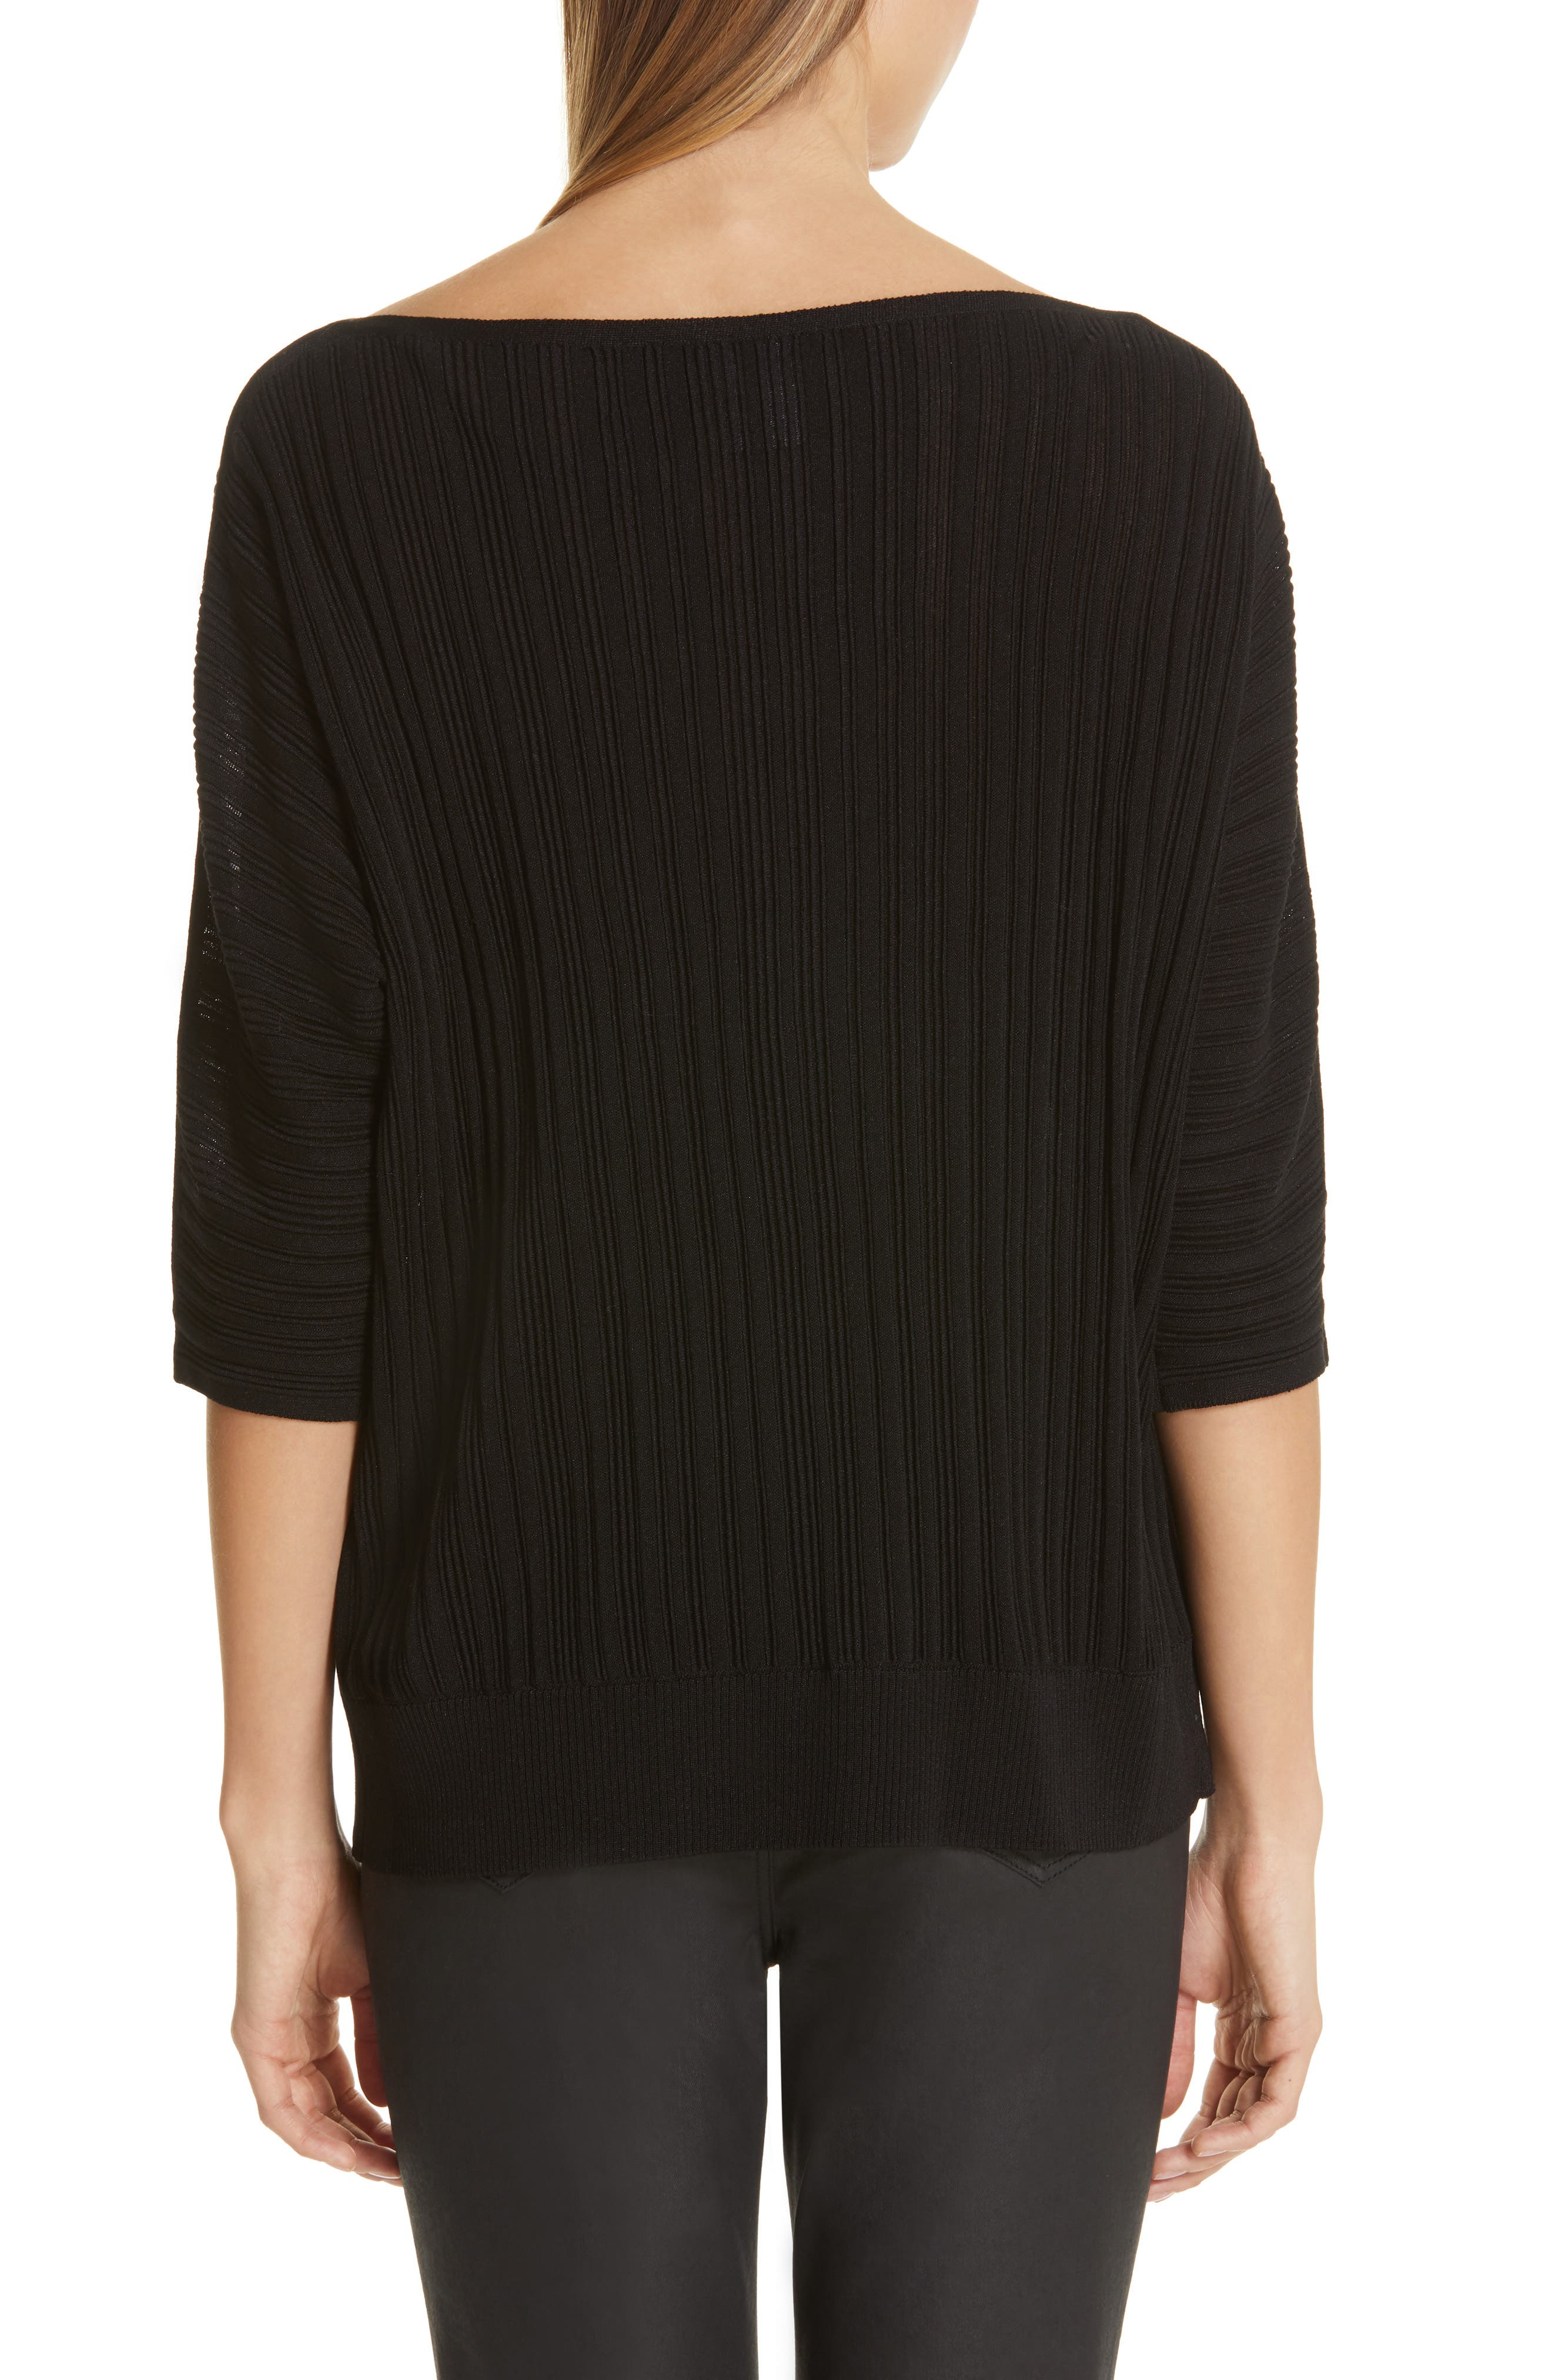 LAFAYETTE 148 NEW YORK, Plissé Ribbed Dolman Sweater, Alternate thumbnail 2, color, BLACK